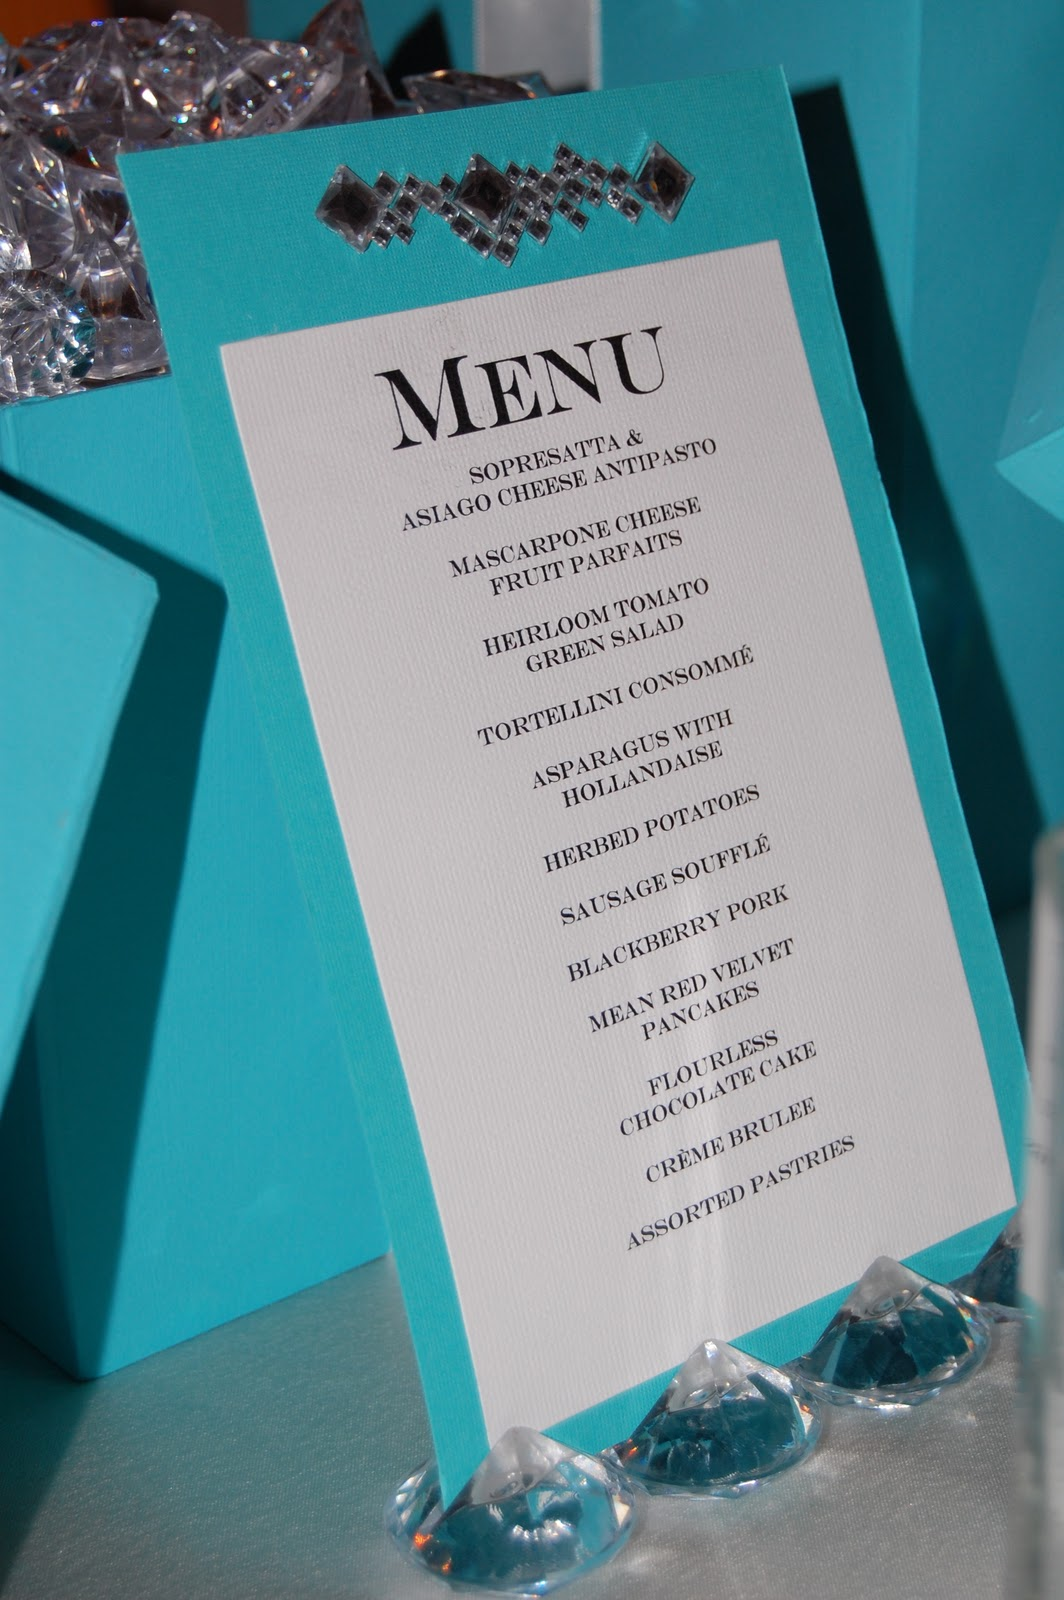 Design muse table for twelve breakfast at tiffany 39 s for Breakfast at tiffany s menu